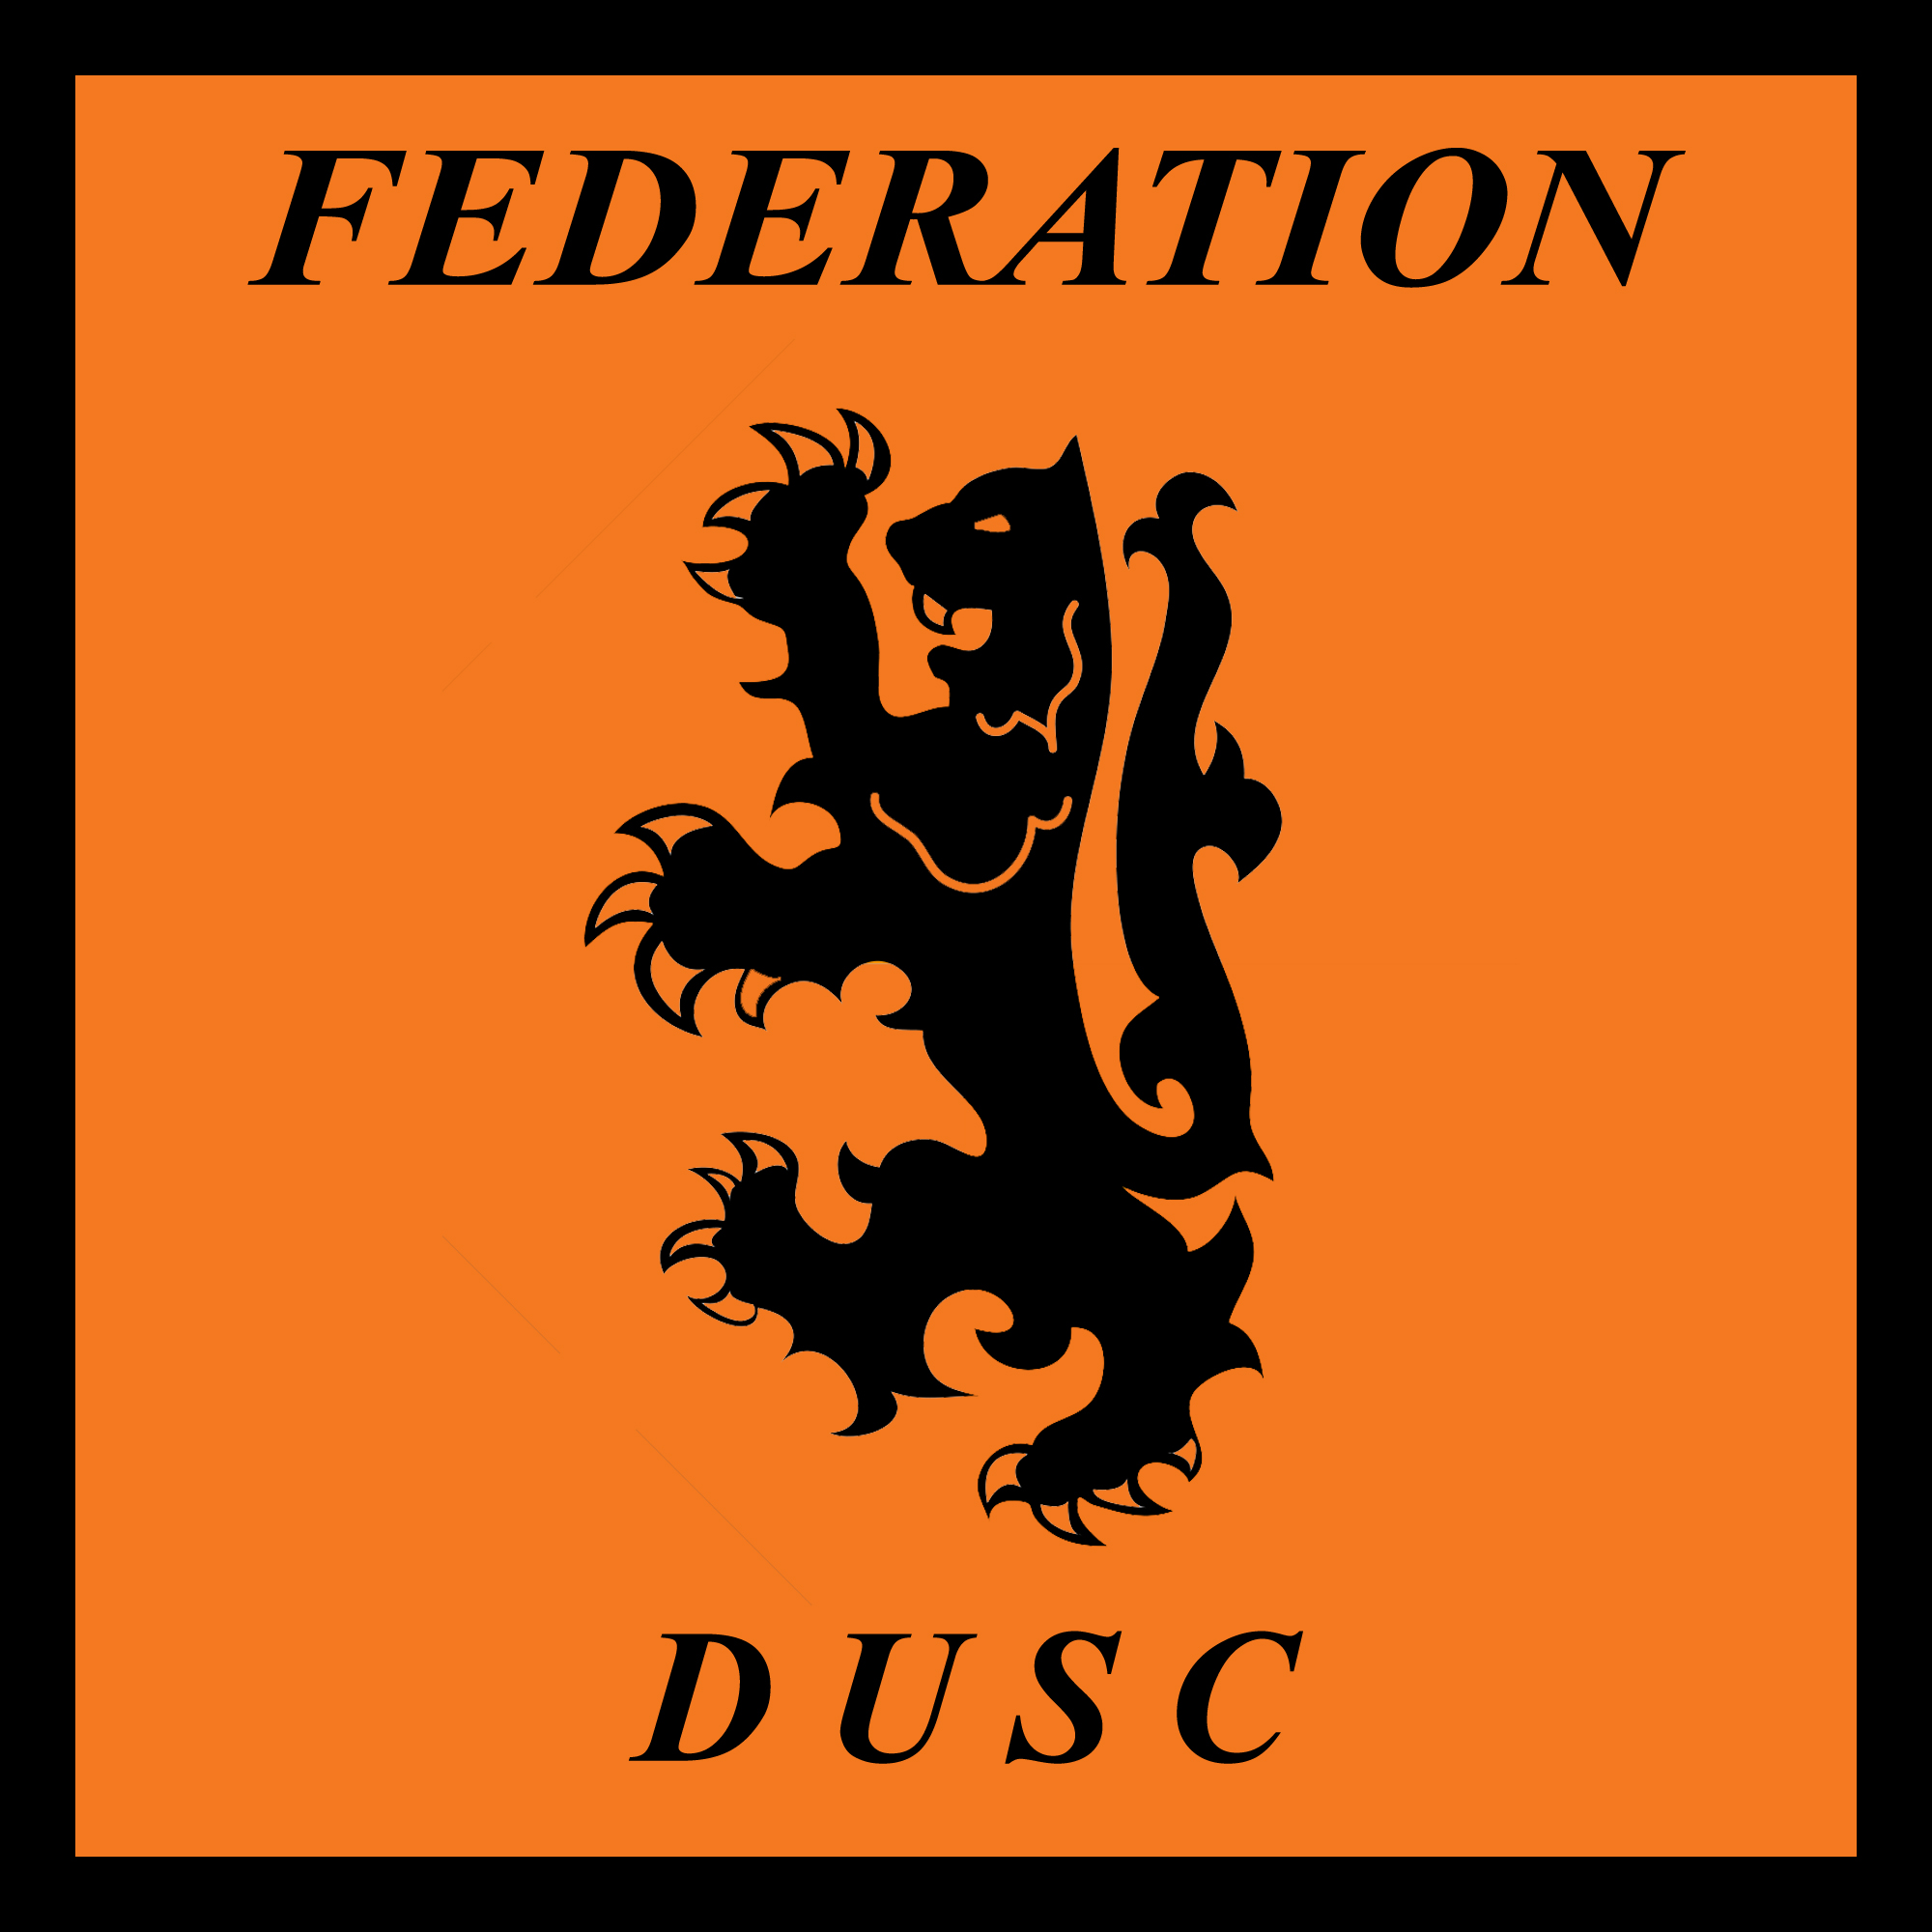 Federation of DUSC Logo